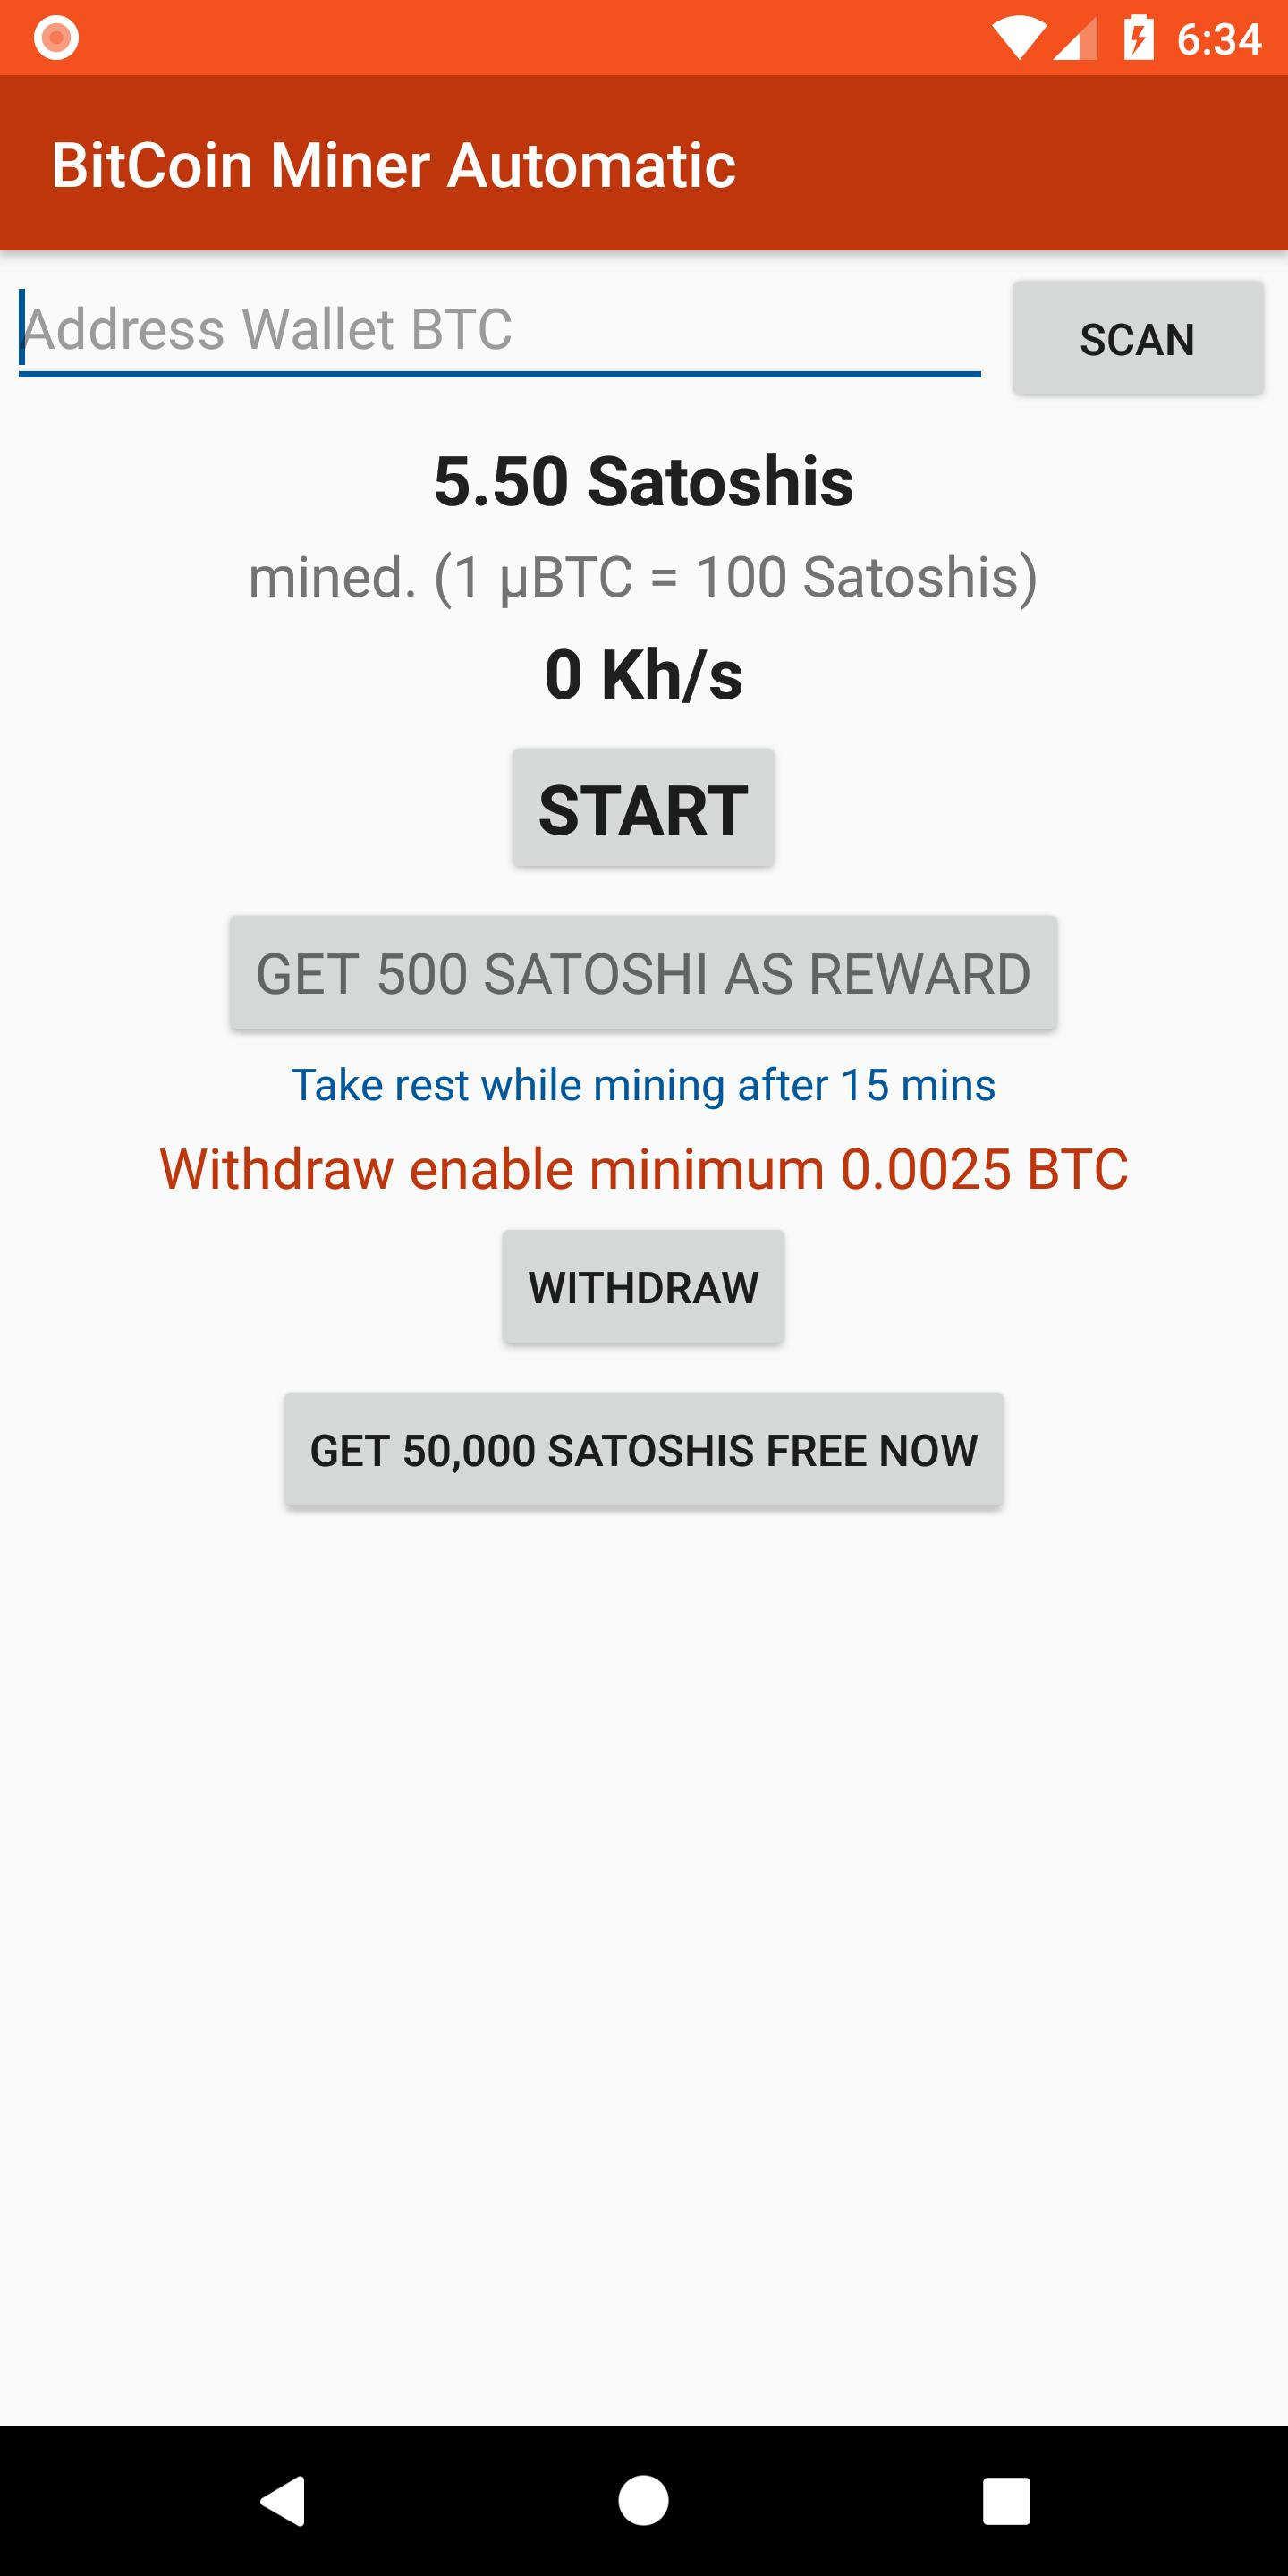 Bitcoin Miner Automatic - Earn free Bitcoins for Android - APK Download